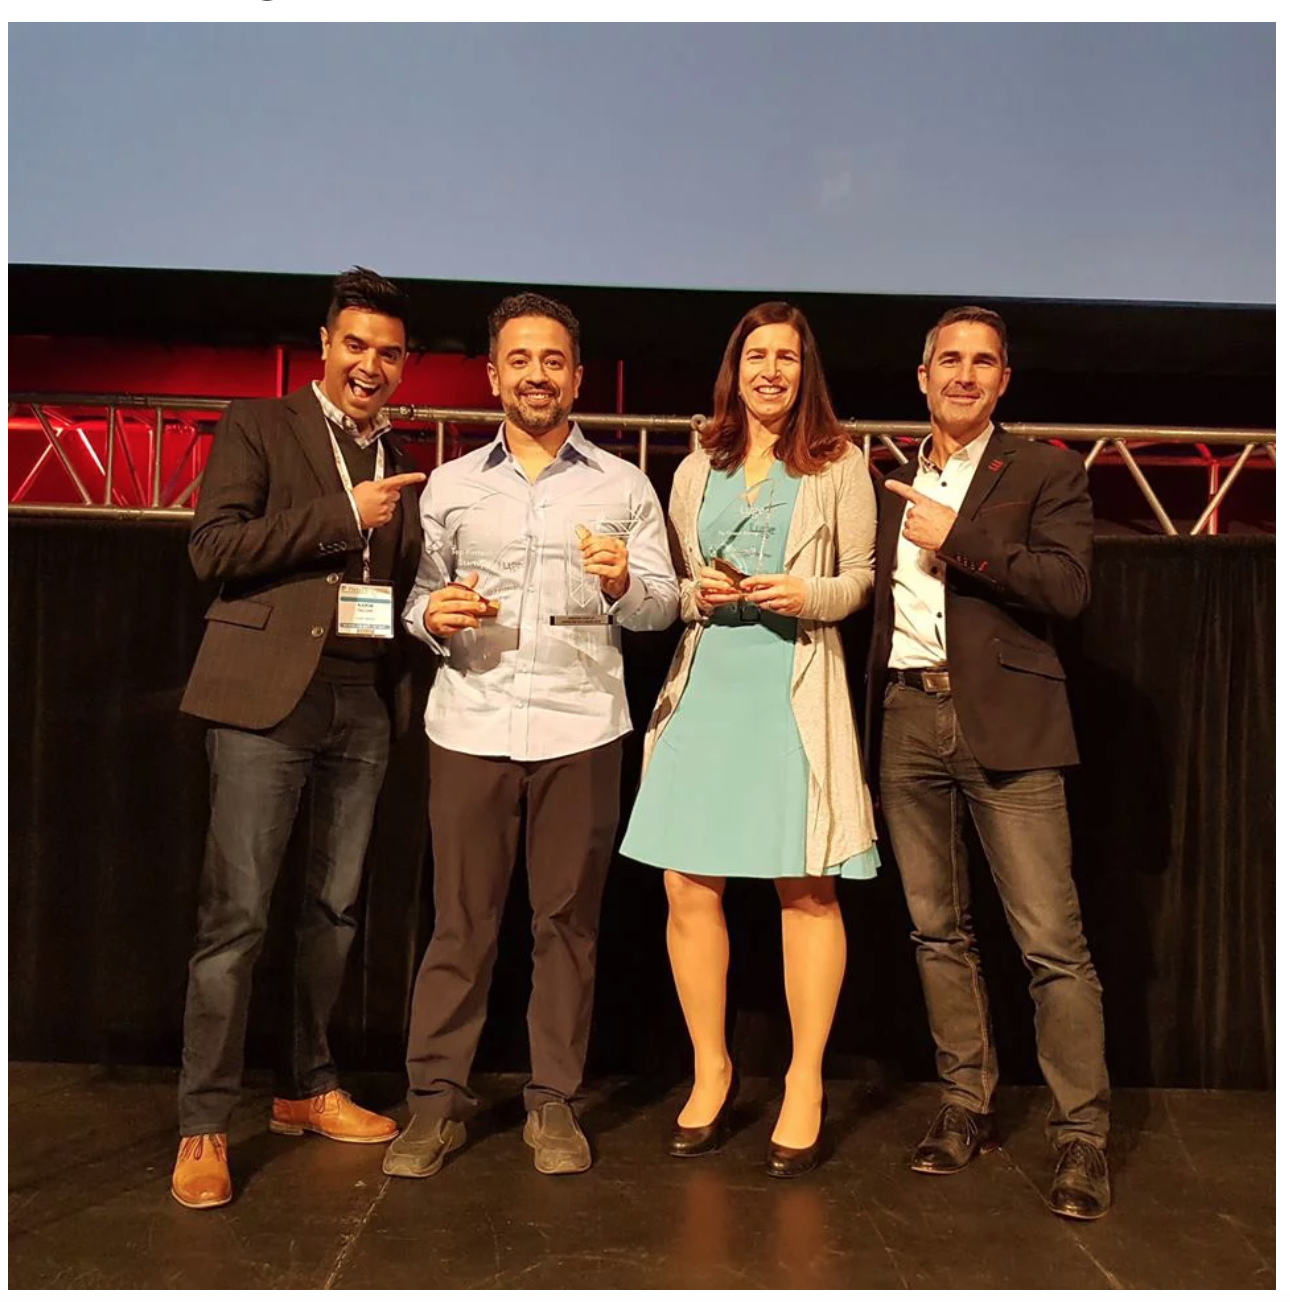 Symend's Hanif Joshaghani and Lendified's (now called Judi.ai) Monique Morden receiving prizes from Luge Capital partners, David Nault (extreme right) and Karim Gillani (extreme left)